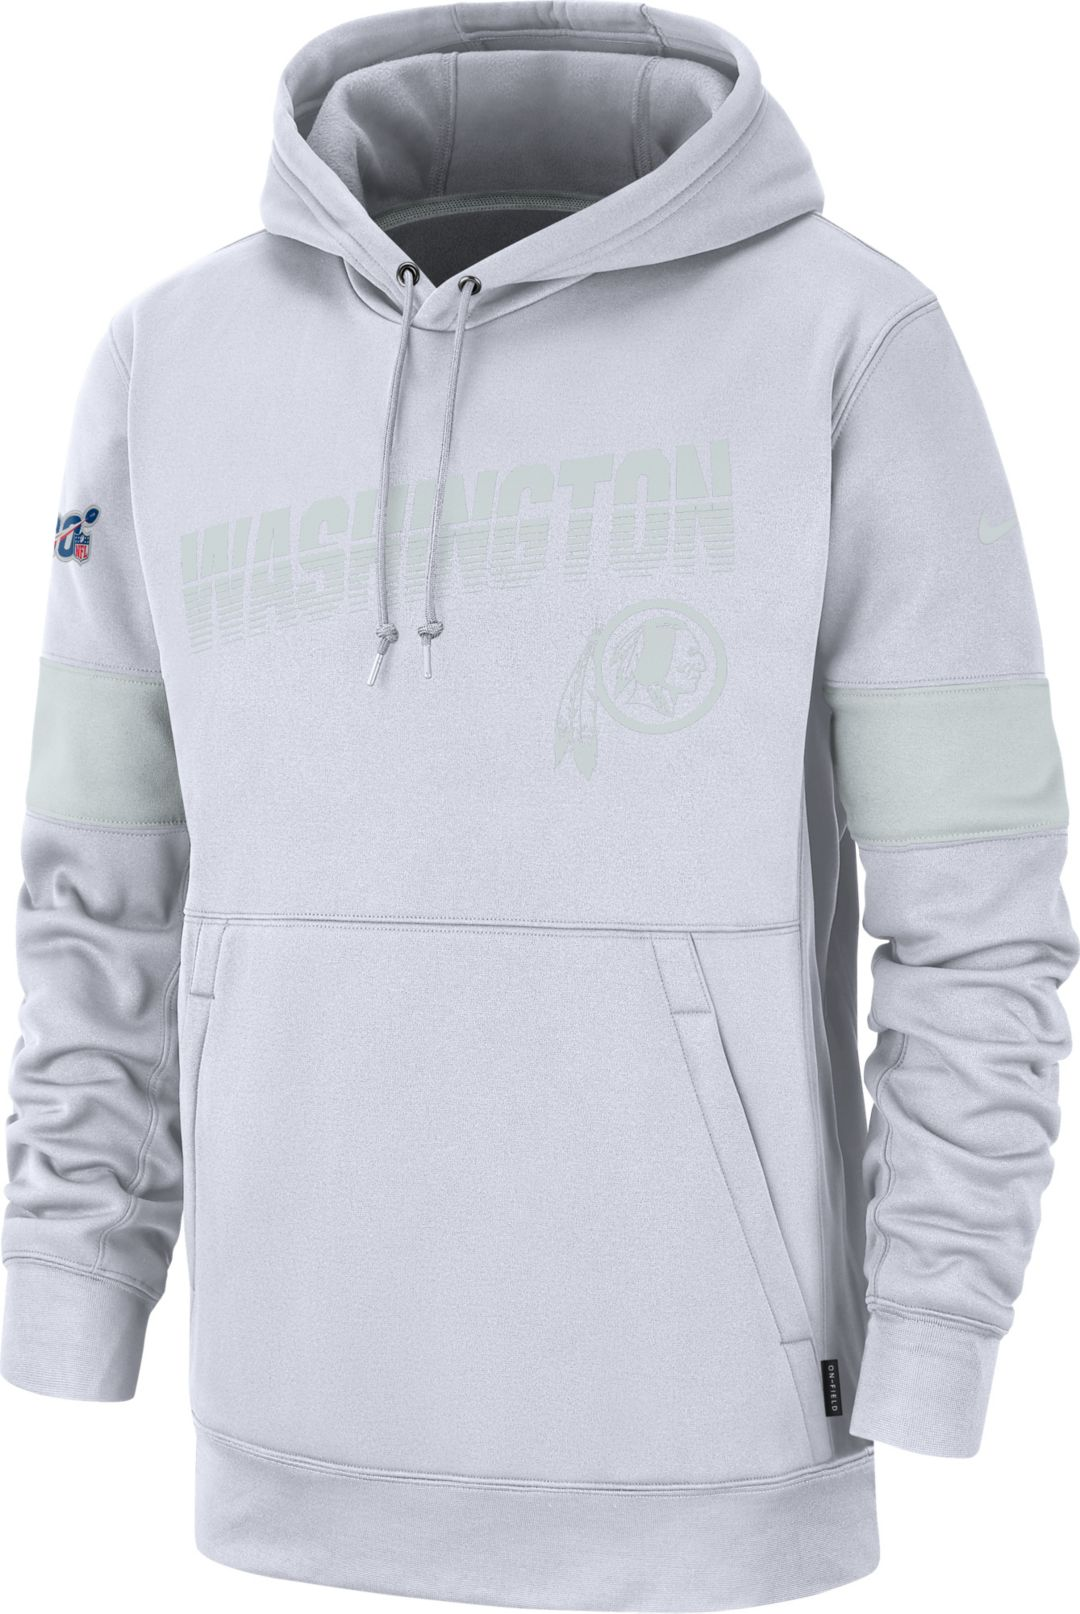 pretty nice 233a2 30eaf Nike Men's Washington Redskins 100th Sideline Therma-FIT Pullover White  Hoodie